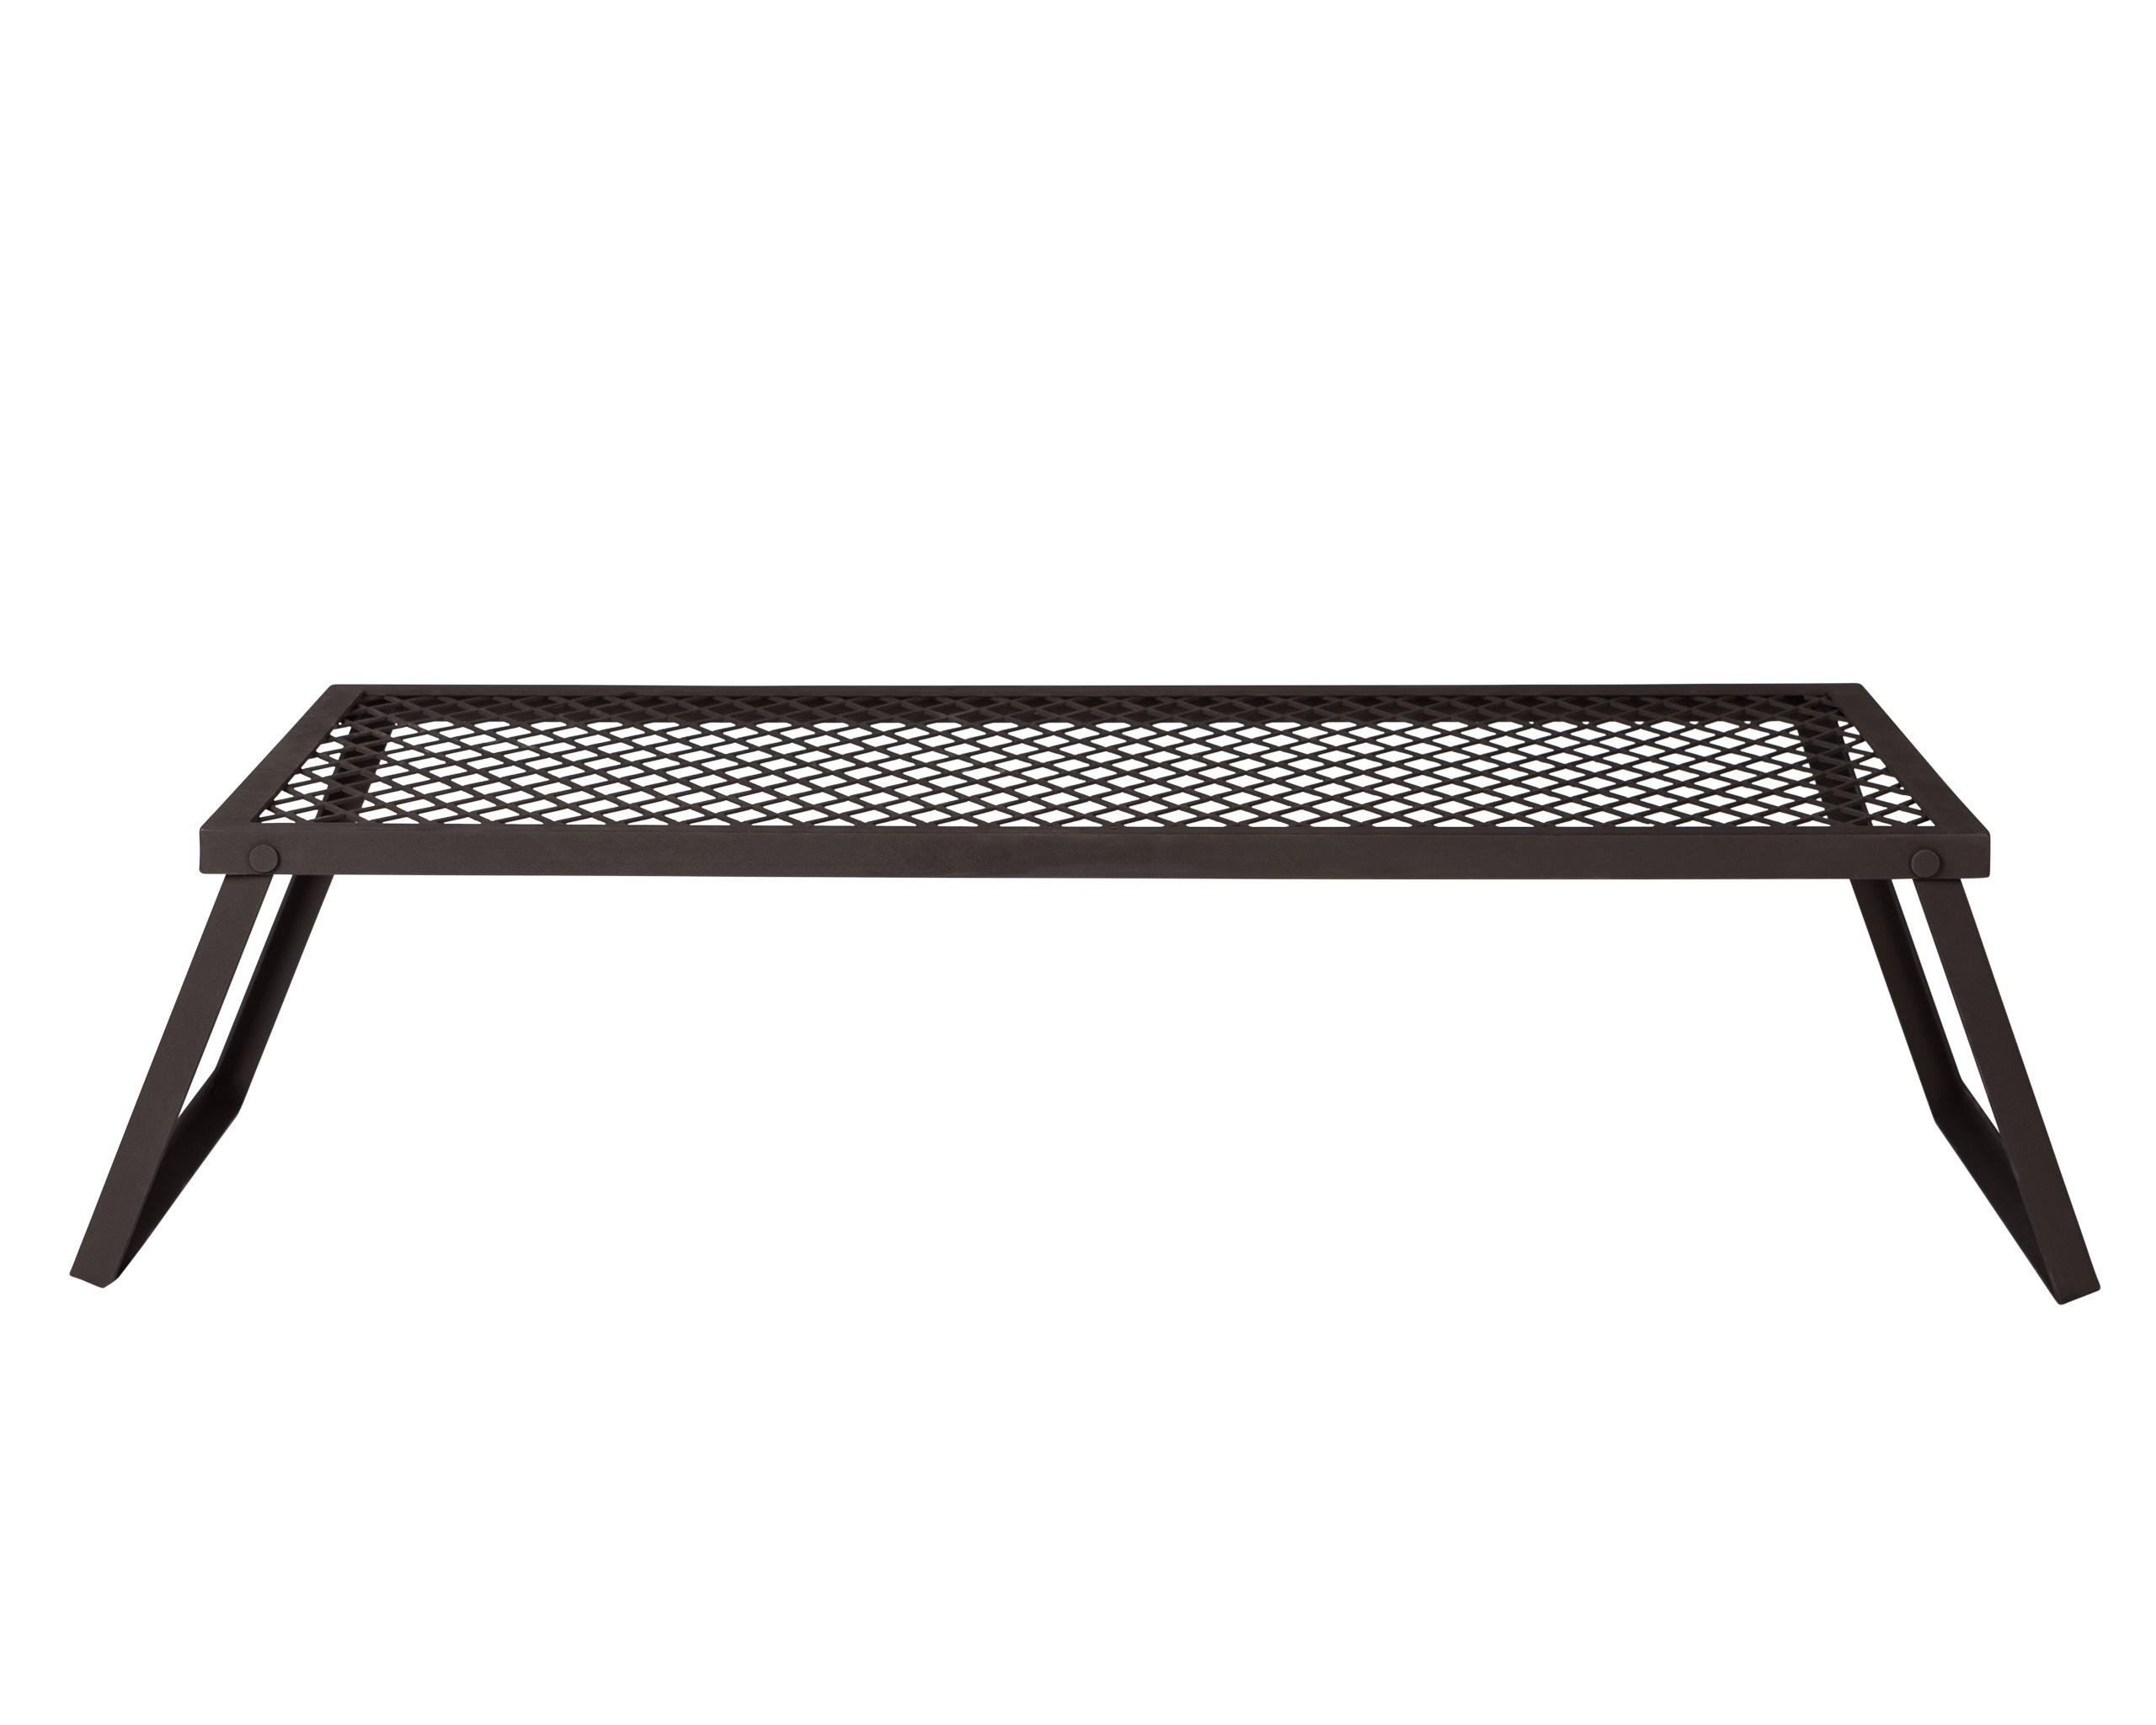 AmazonBasics Extra Large Portable Folding Camping Grill Grate - 40 x 18 x 9 Inches, Black Steel by AmazonBasics